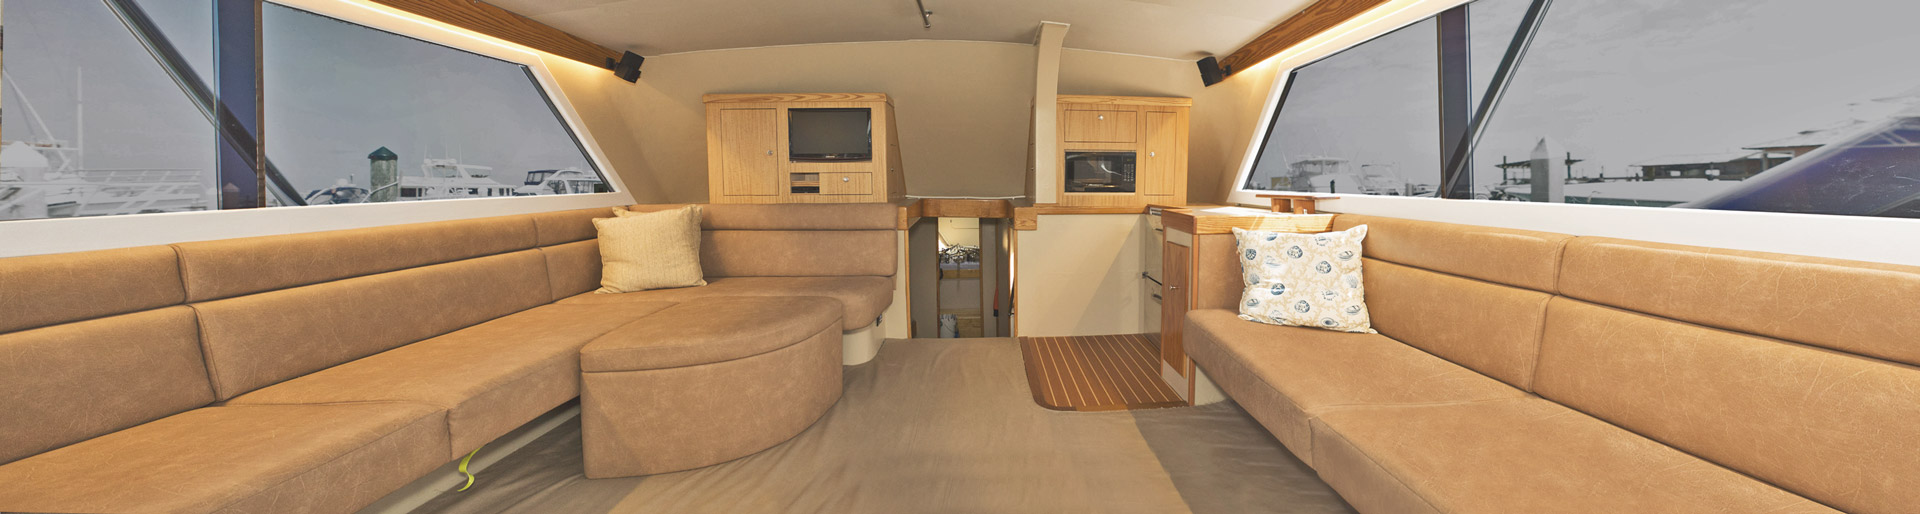 j-hook-fishing-charters-st-augustine-florida-luxury-cabin-interior-toward-stern